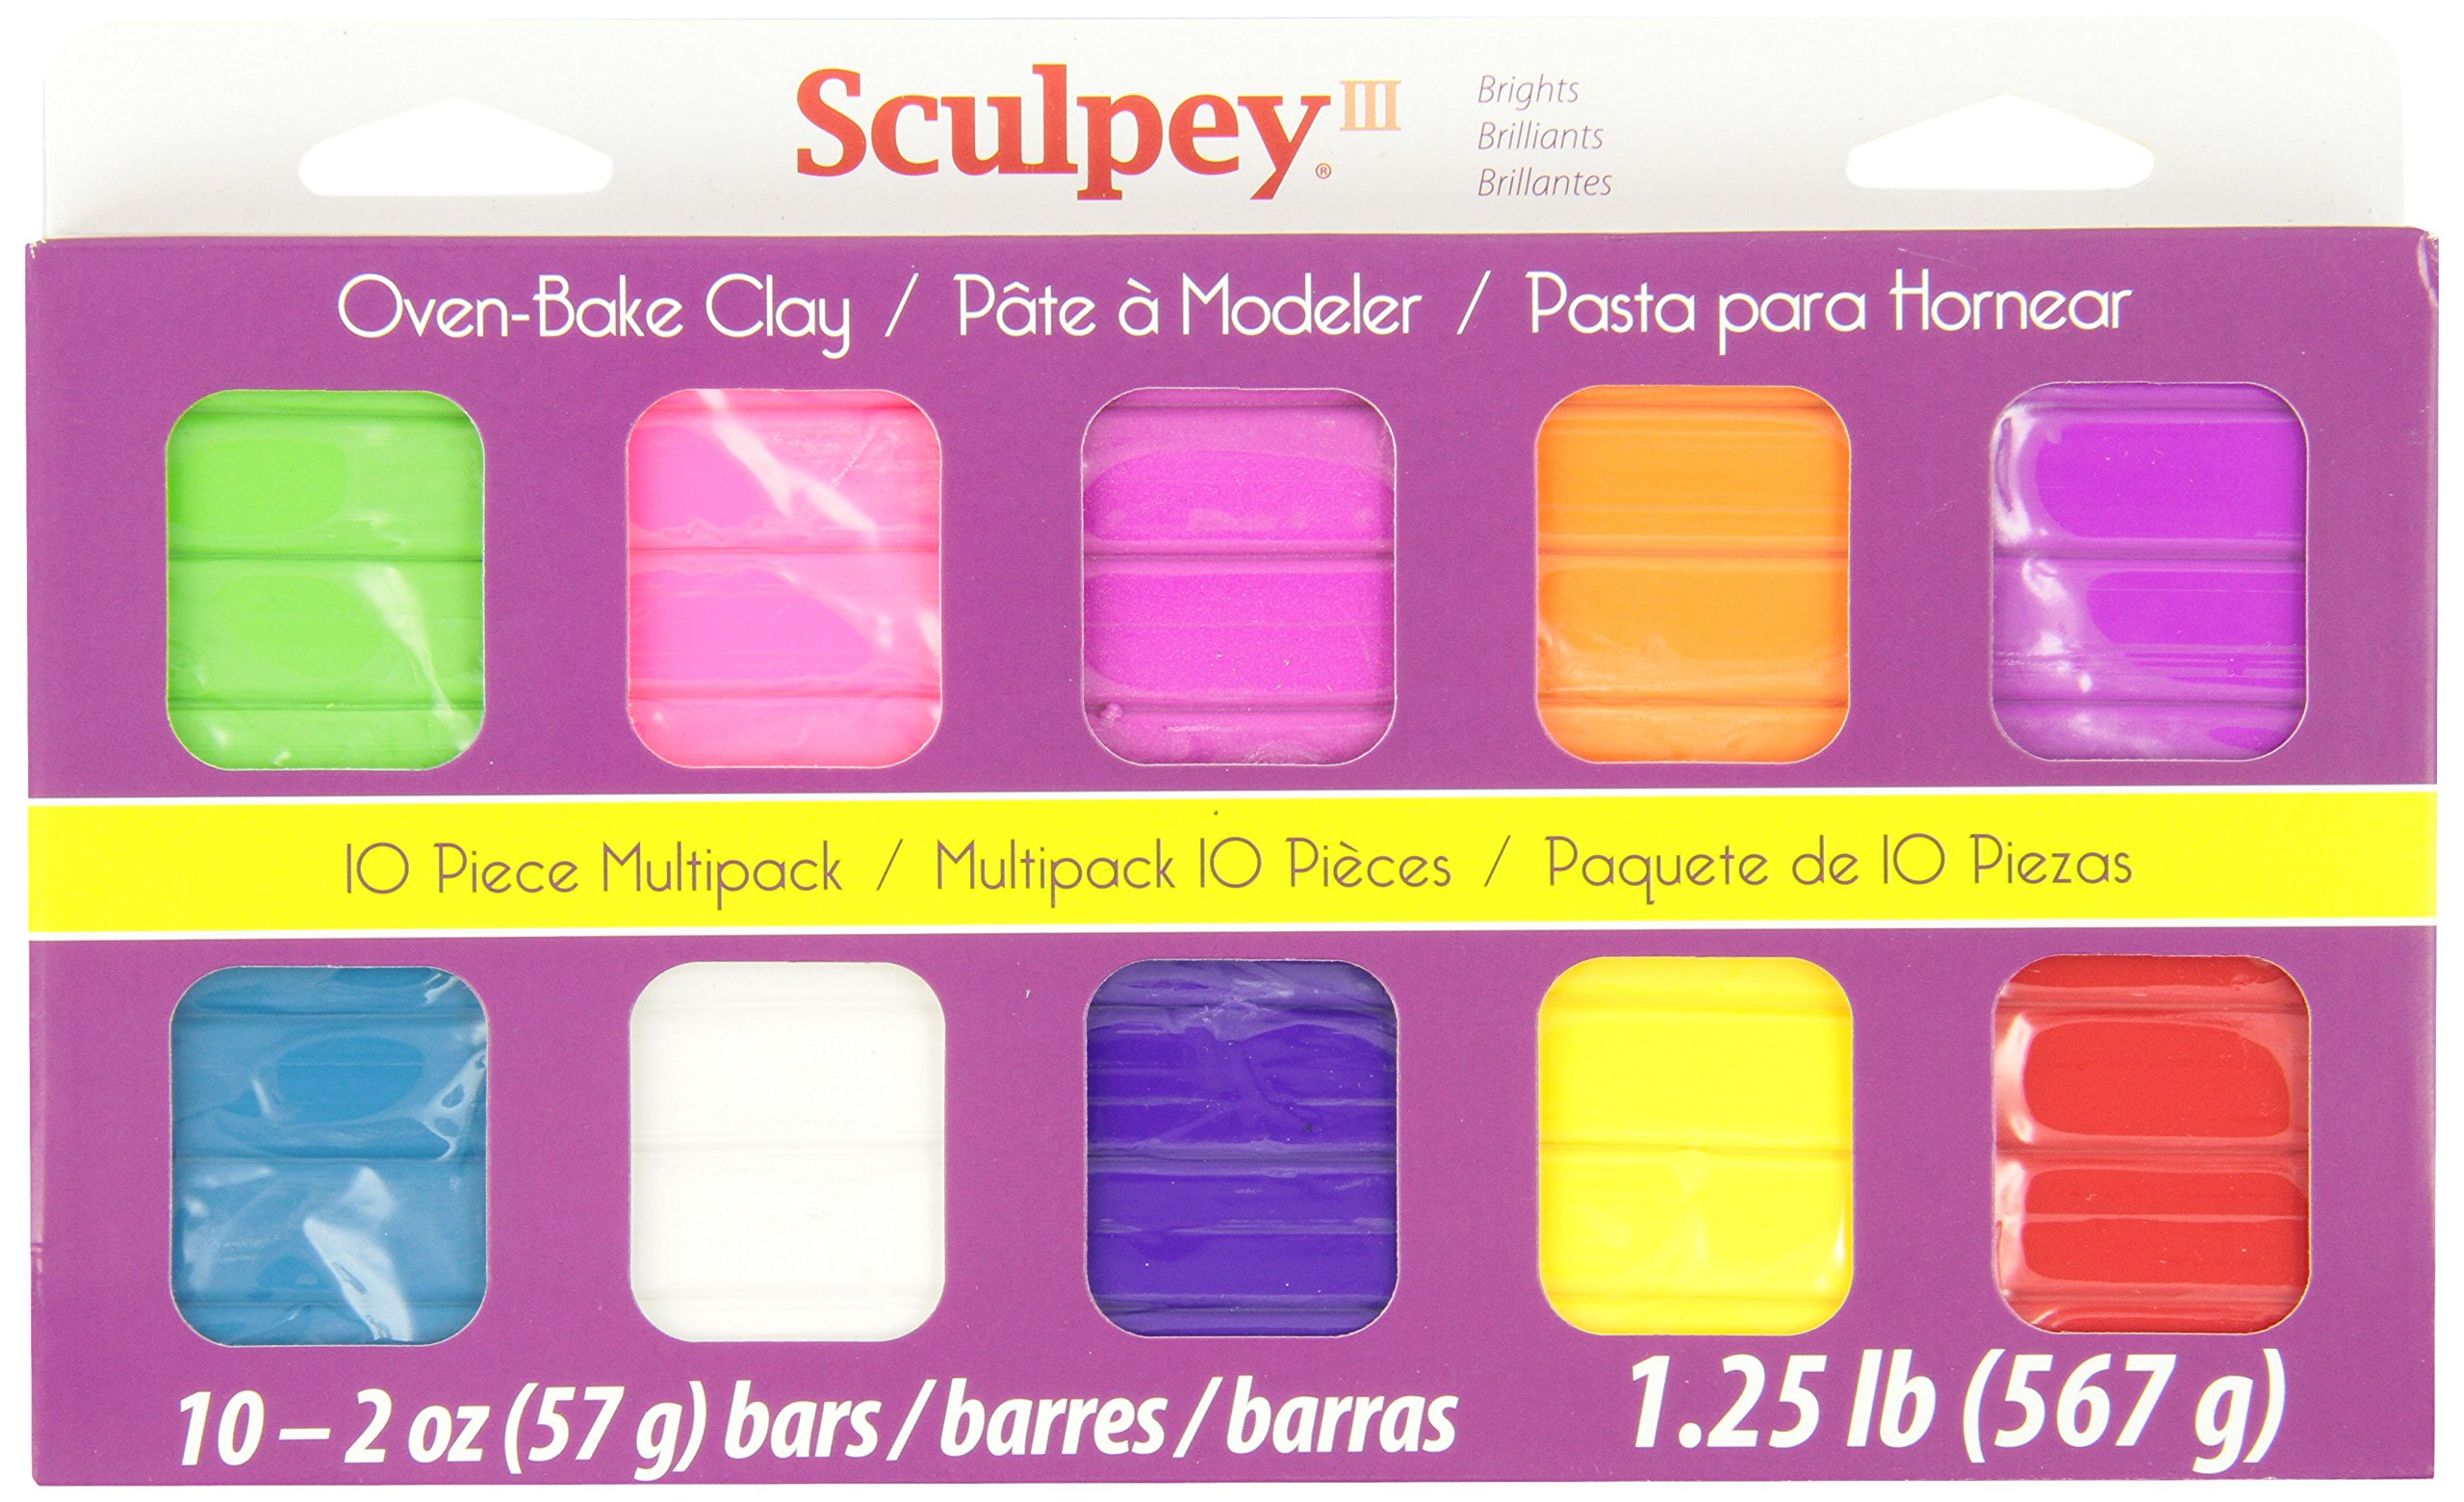 Polyform Products Sculpey III Multipack by Sculpey